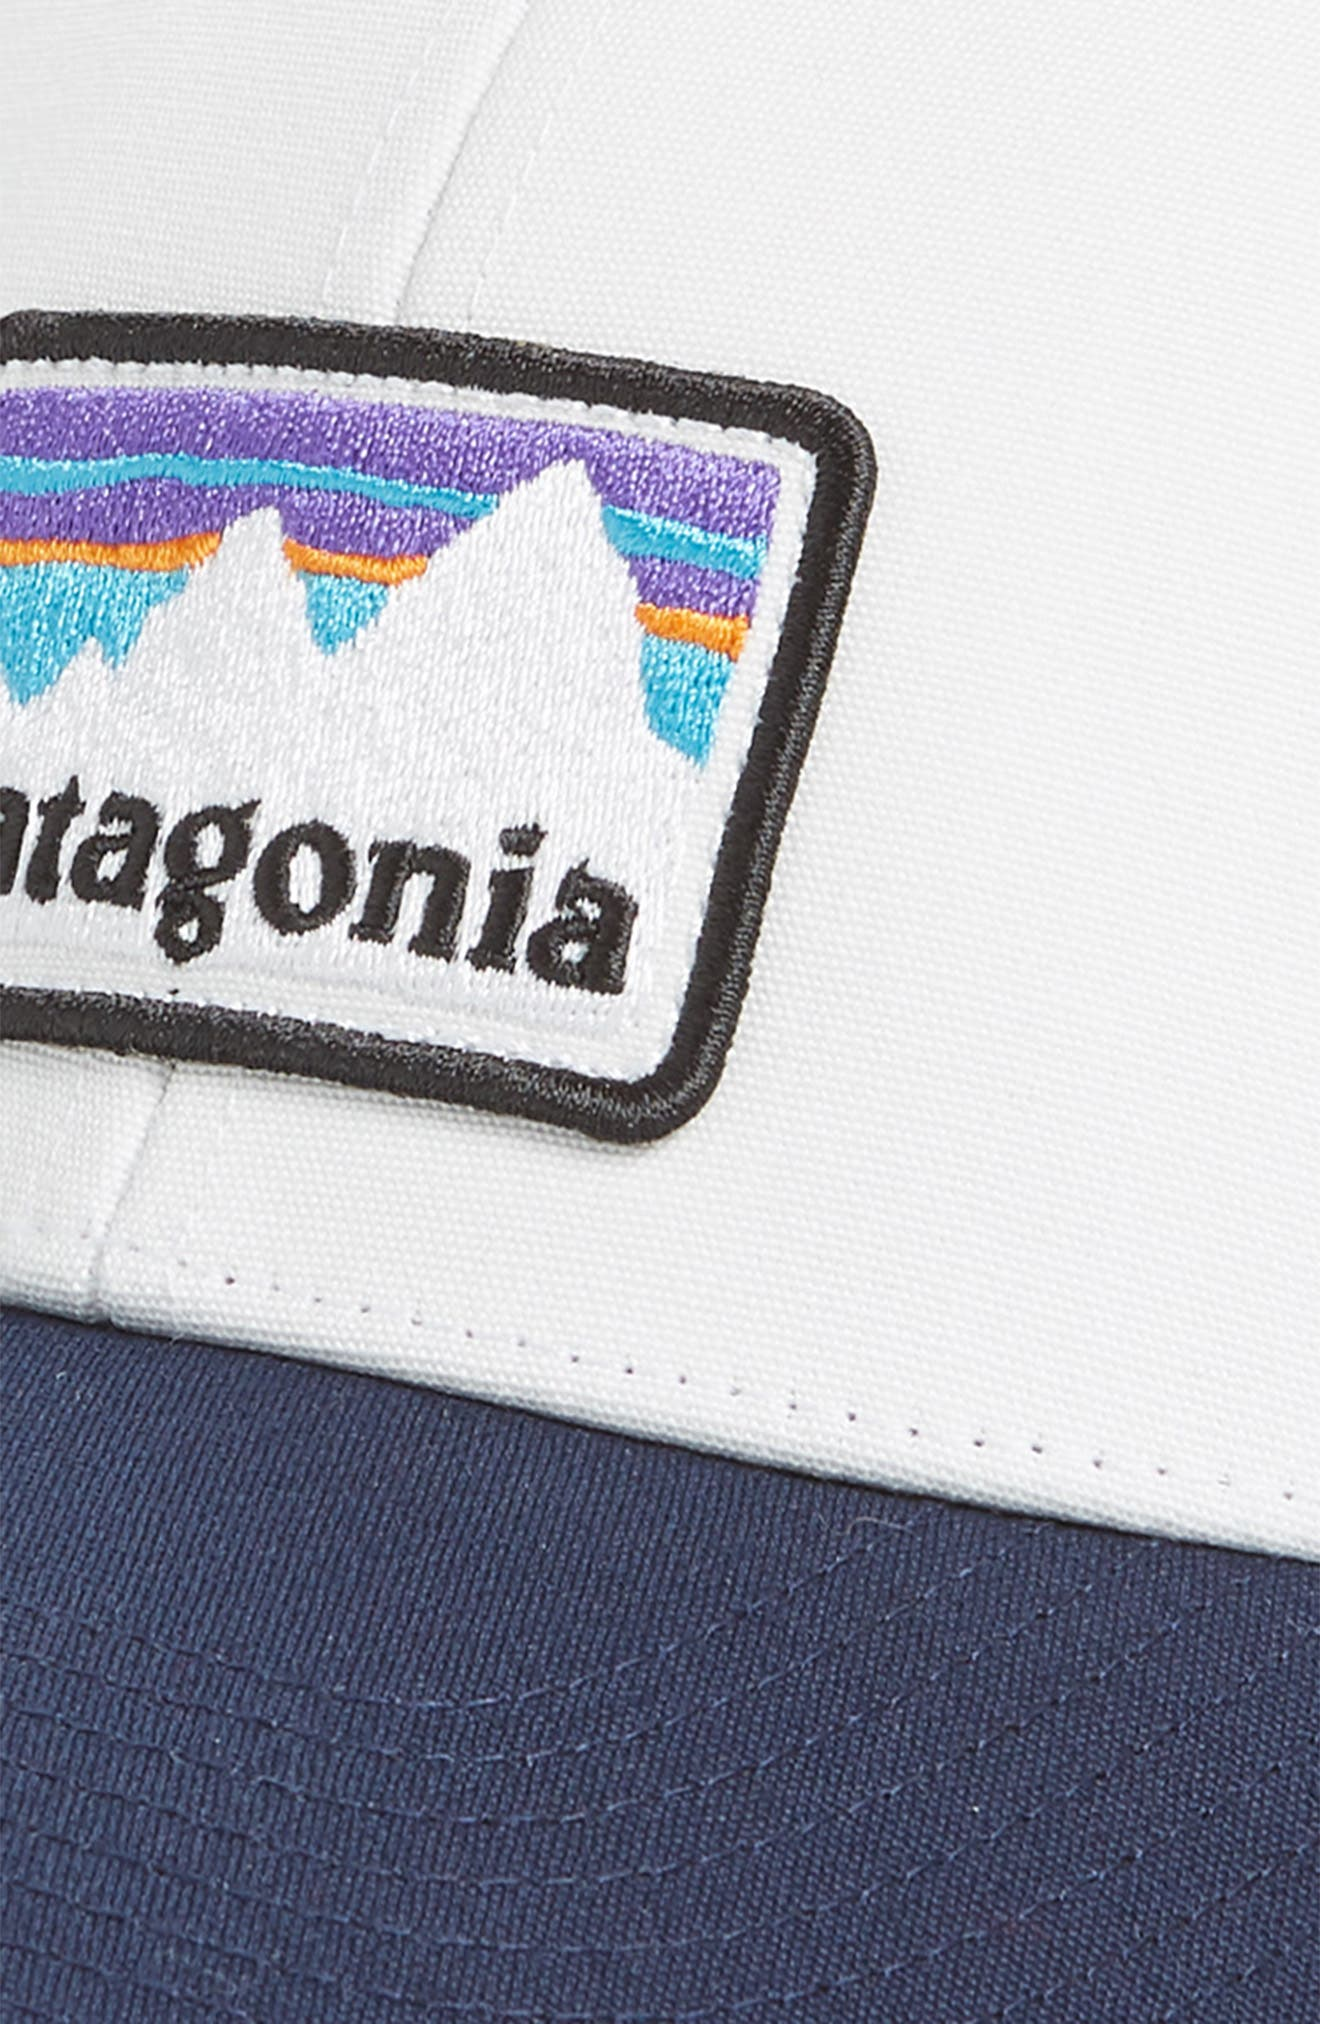 Shop Sticker Trucker Hat,                             Alternate thumbnail 3, color,                             WHITE WITH CLASSIC NAVY